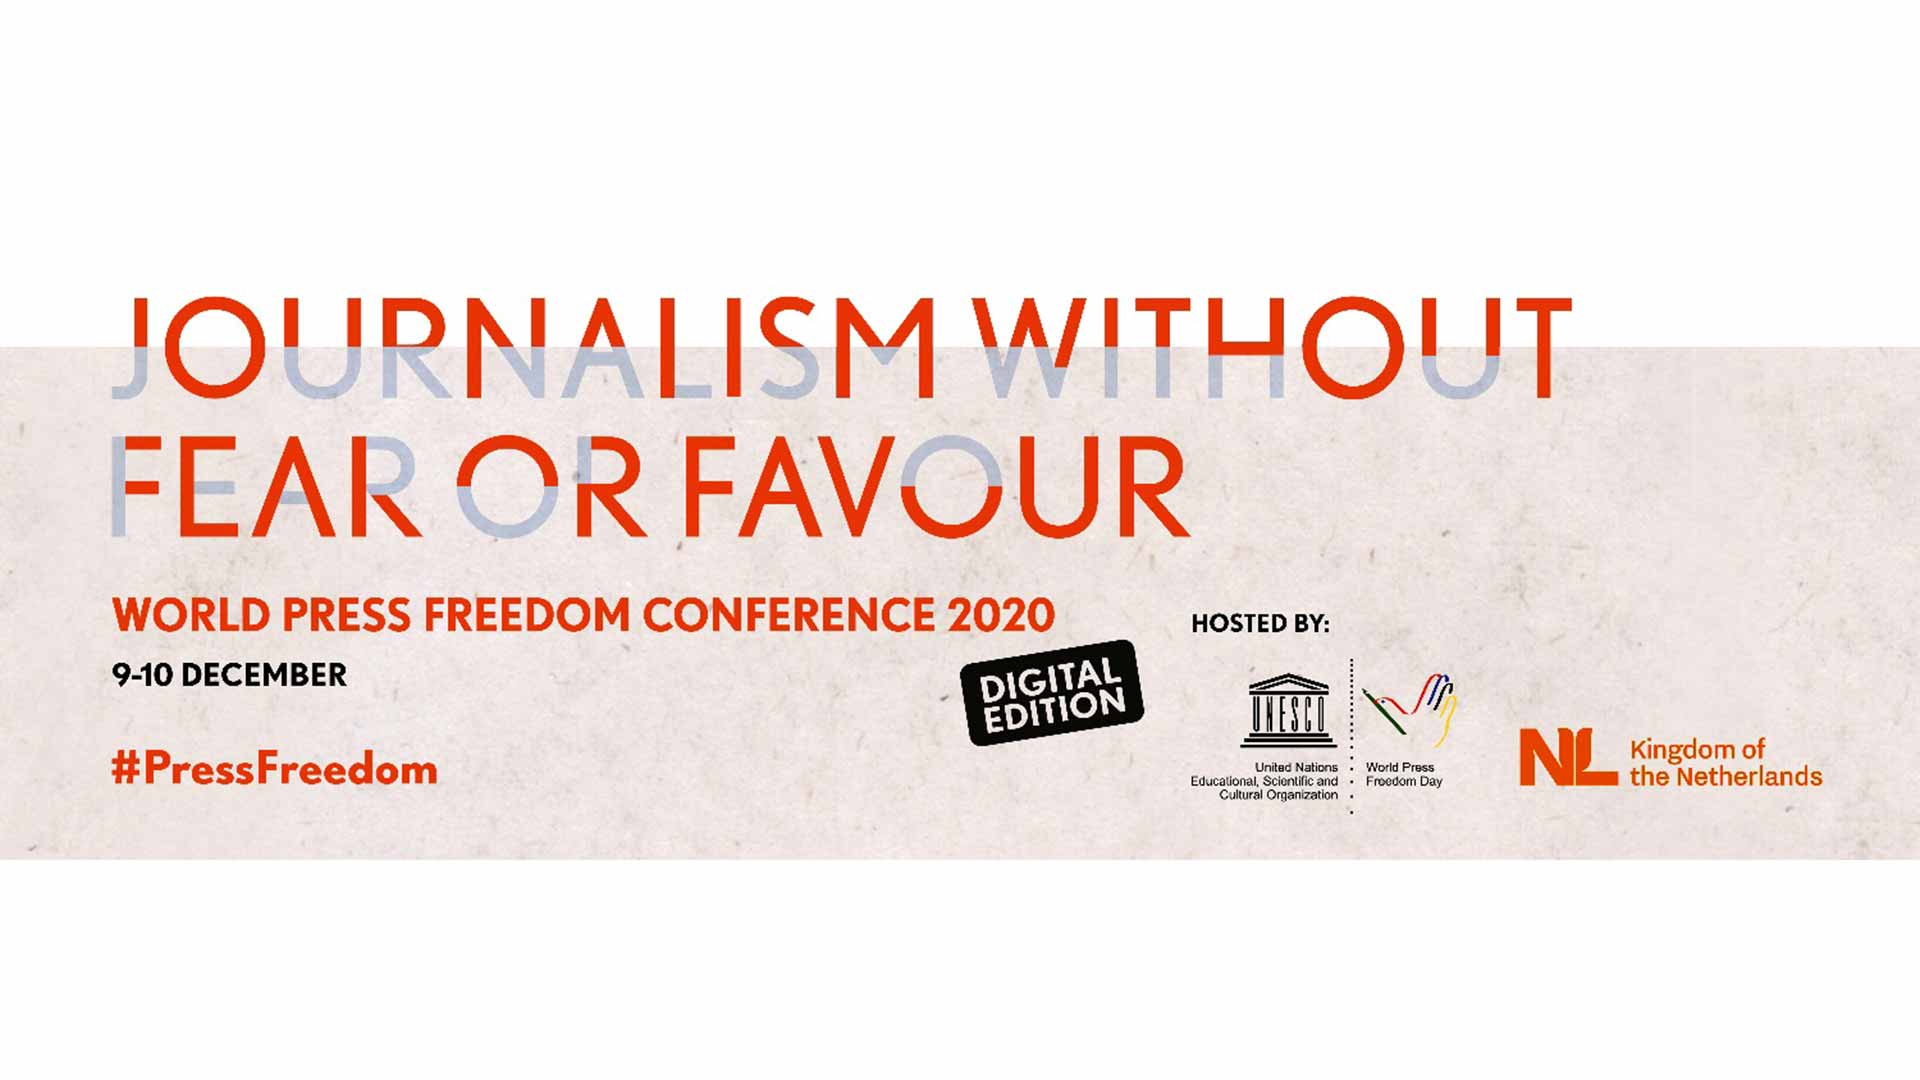 World Press Freedom Conference 2020